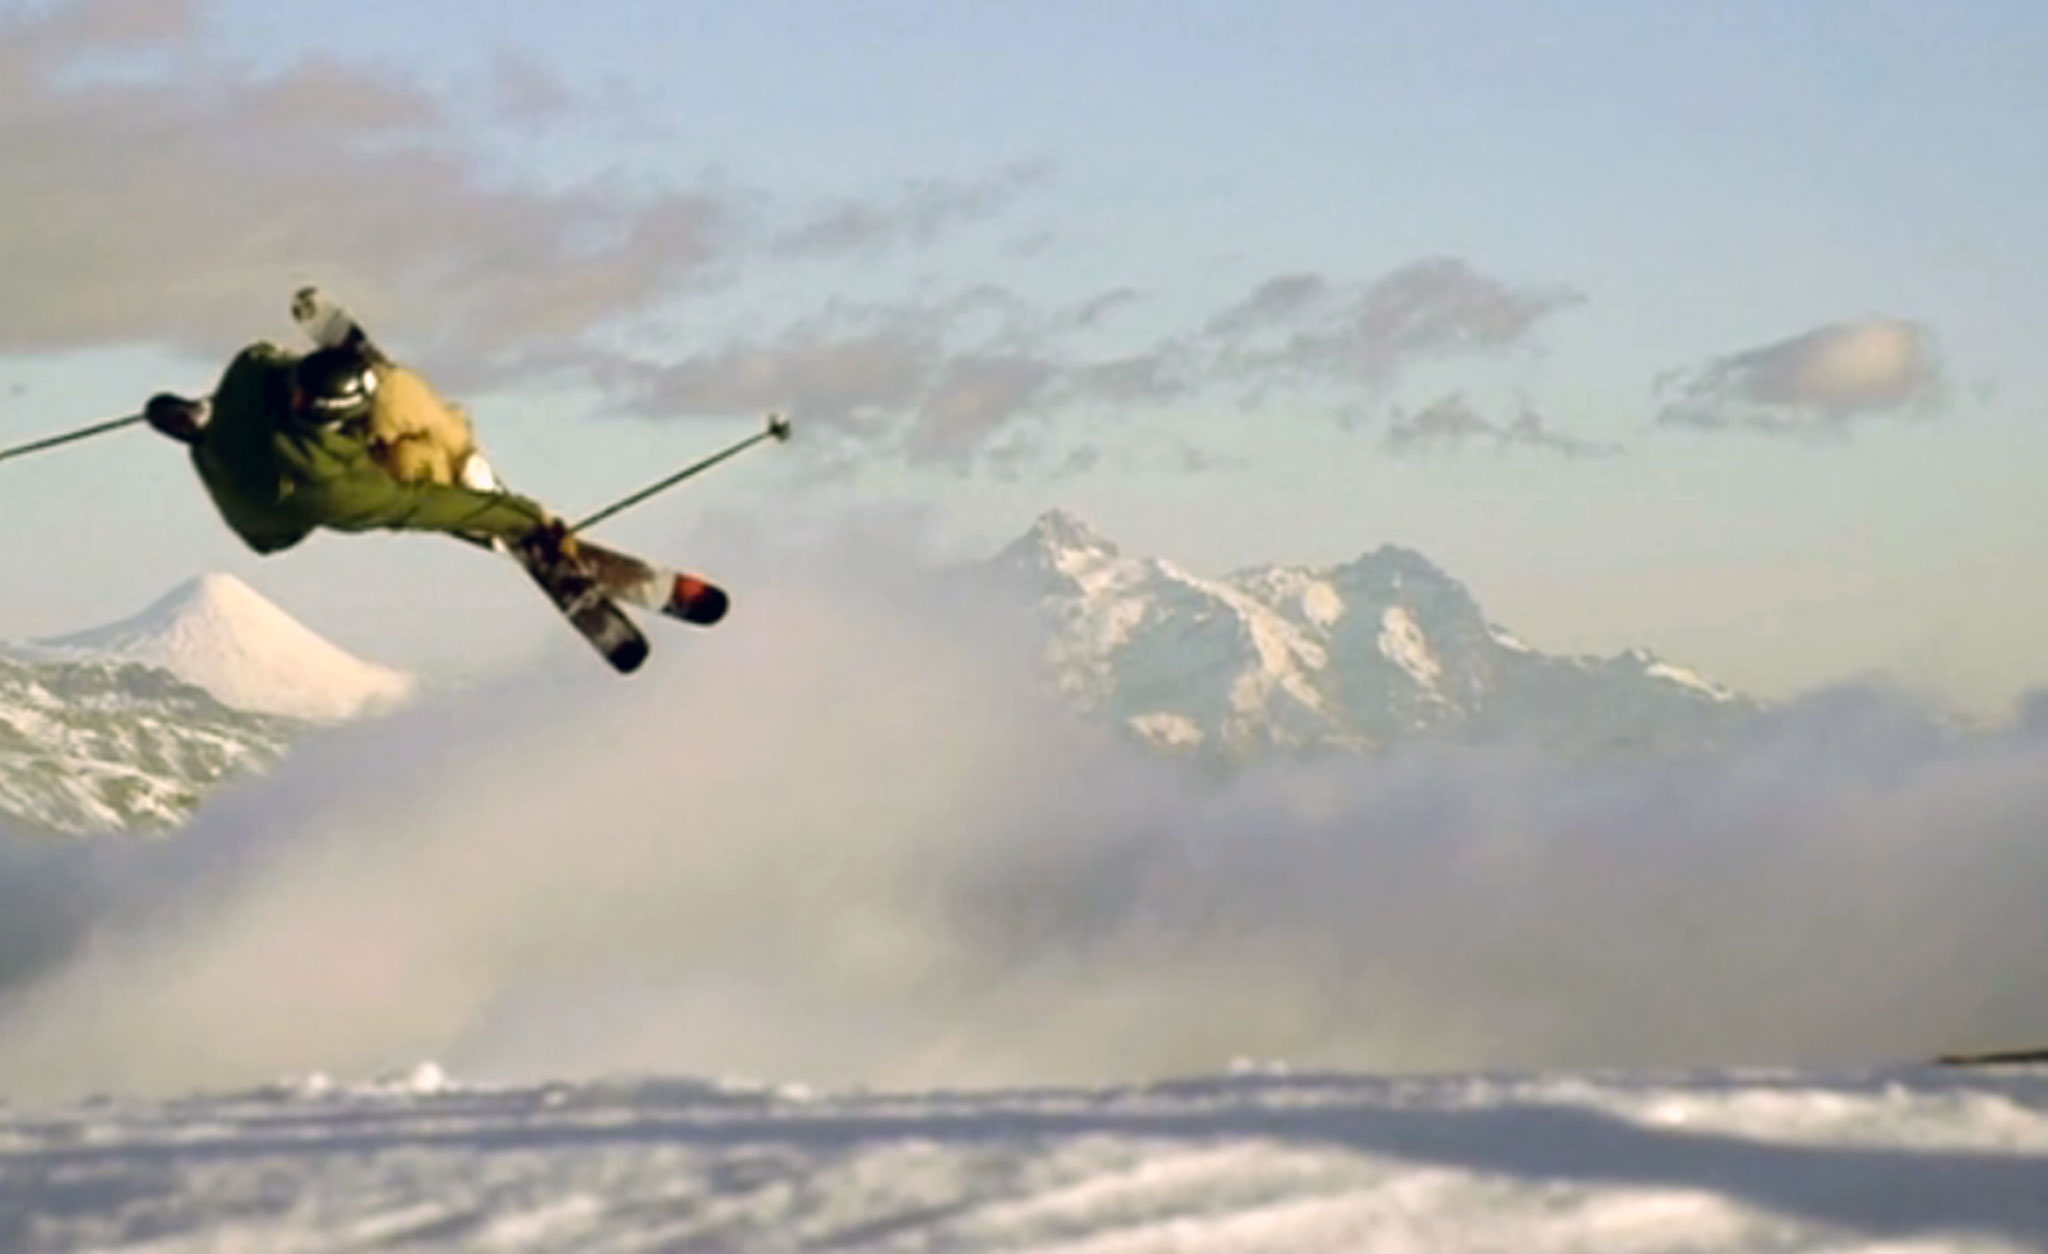 The Salomon Freeski TV crew heads to Chile to document skiing, and wind.